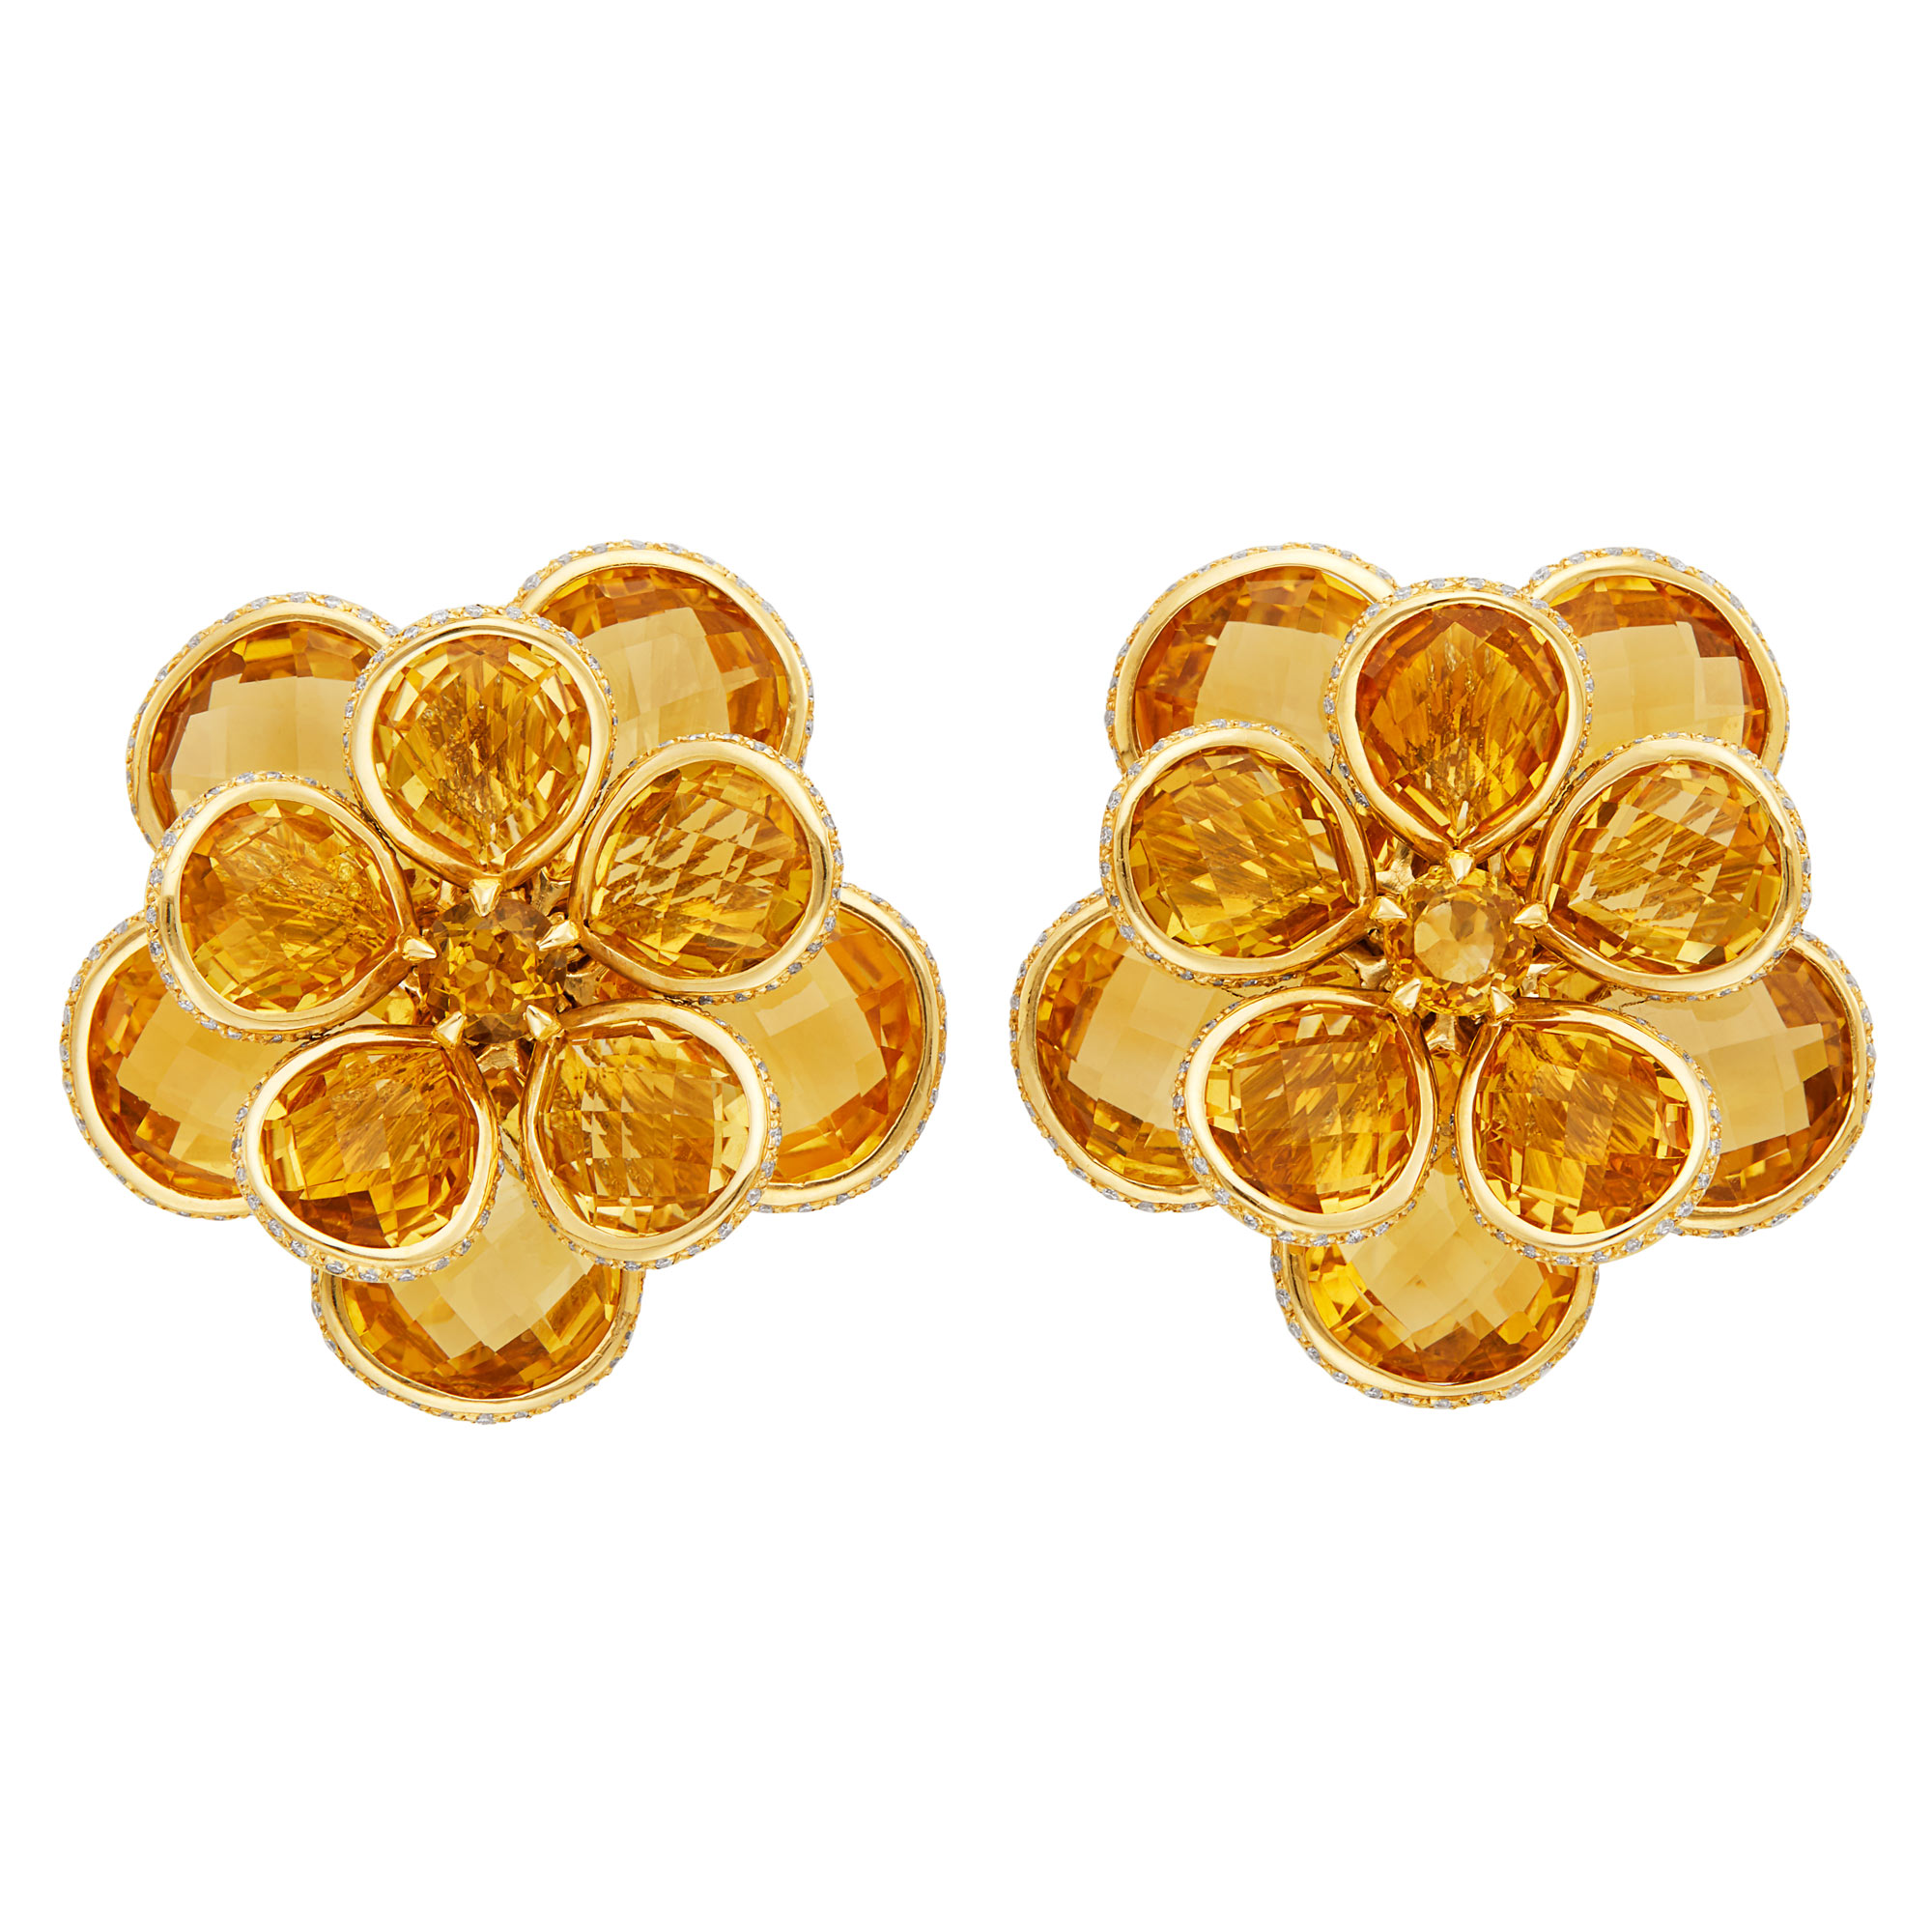 Lot image - Pair of Gold, Citrine and Diamond Flower Earrings